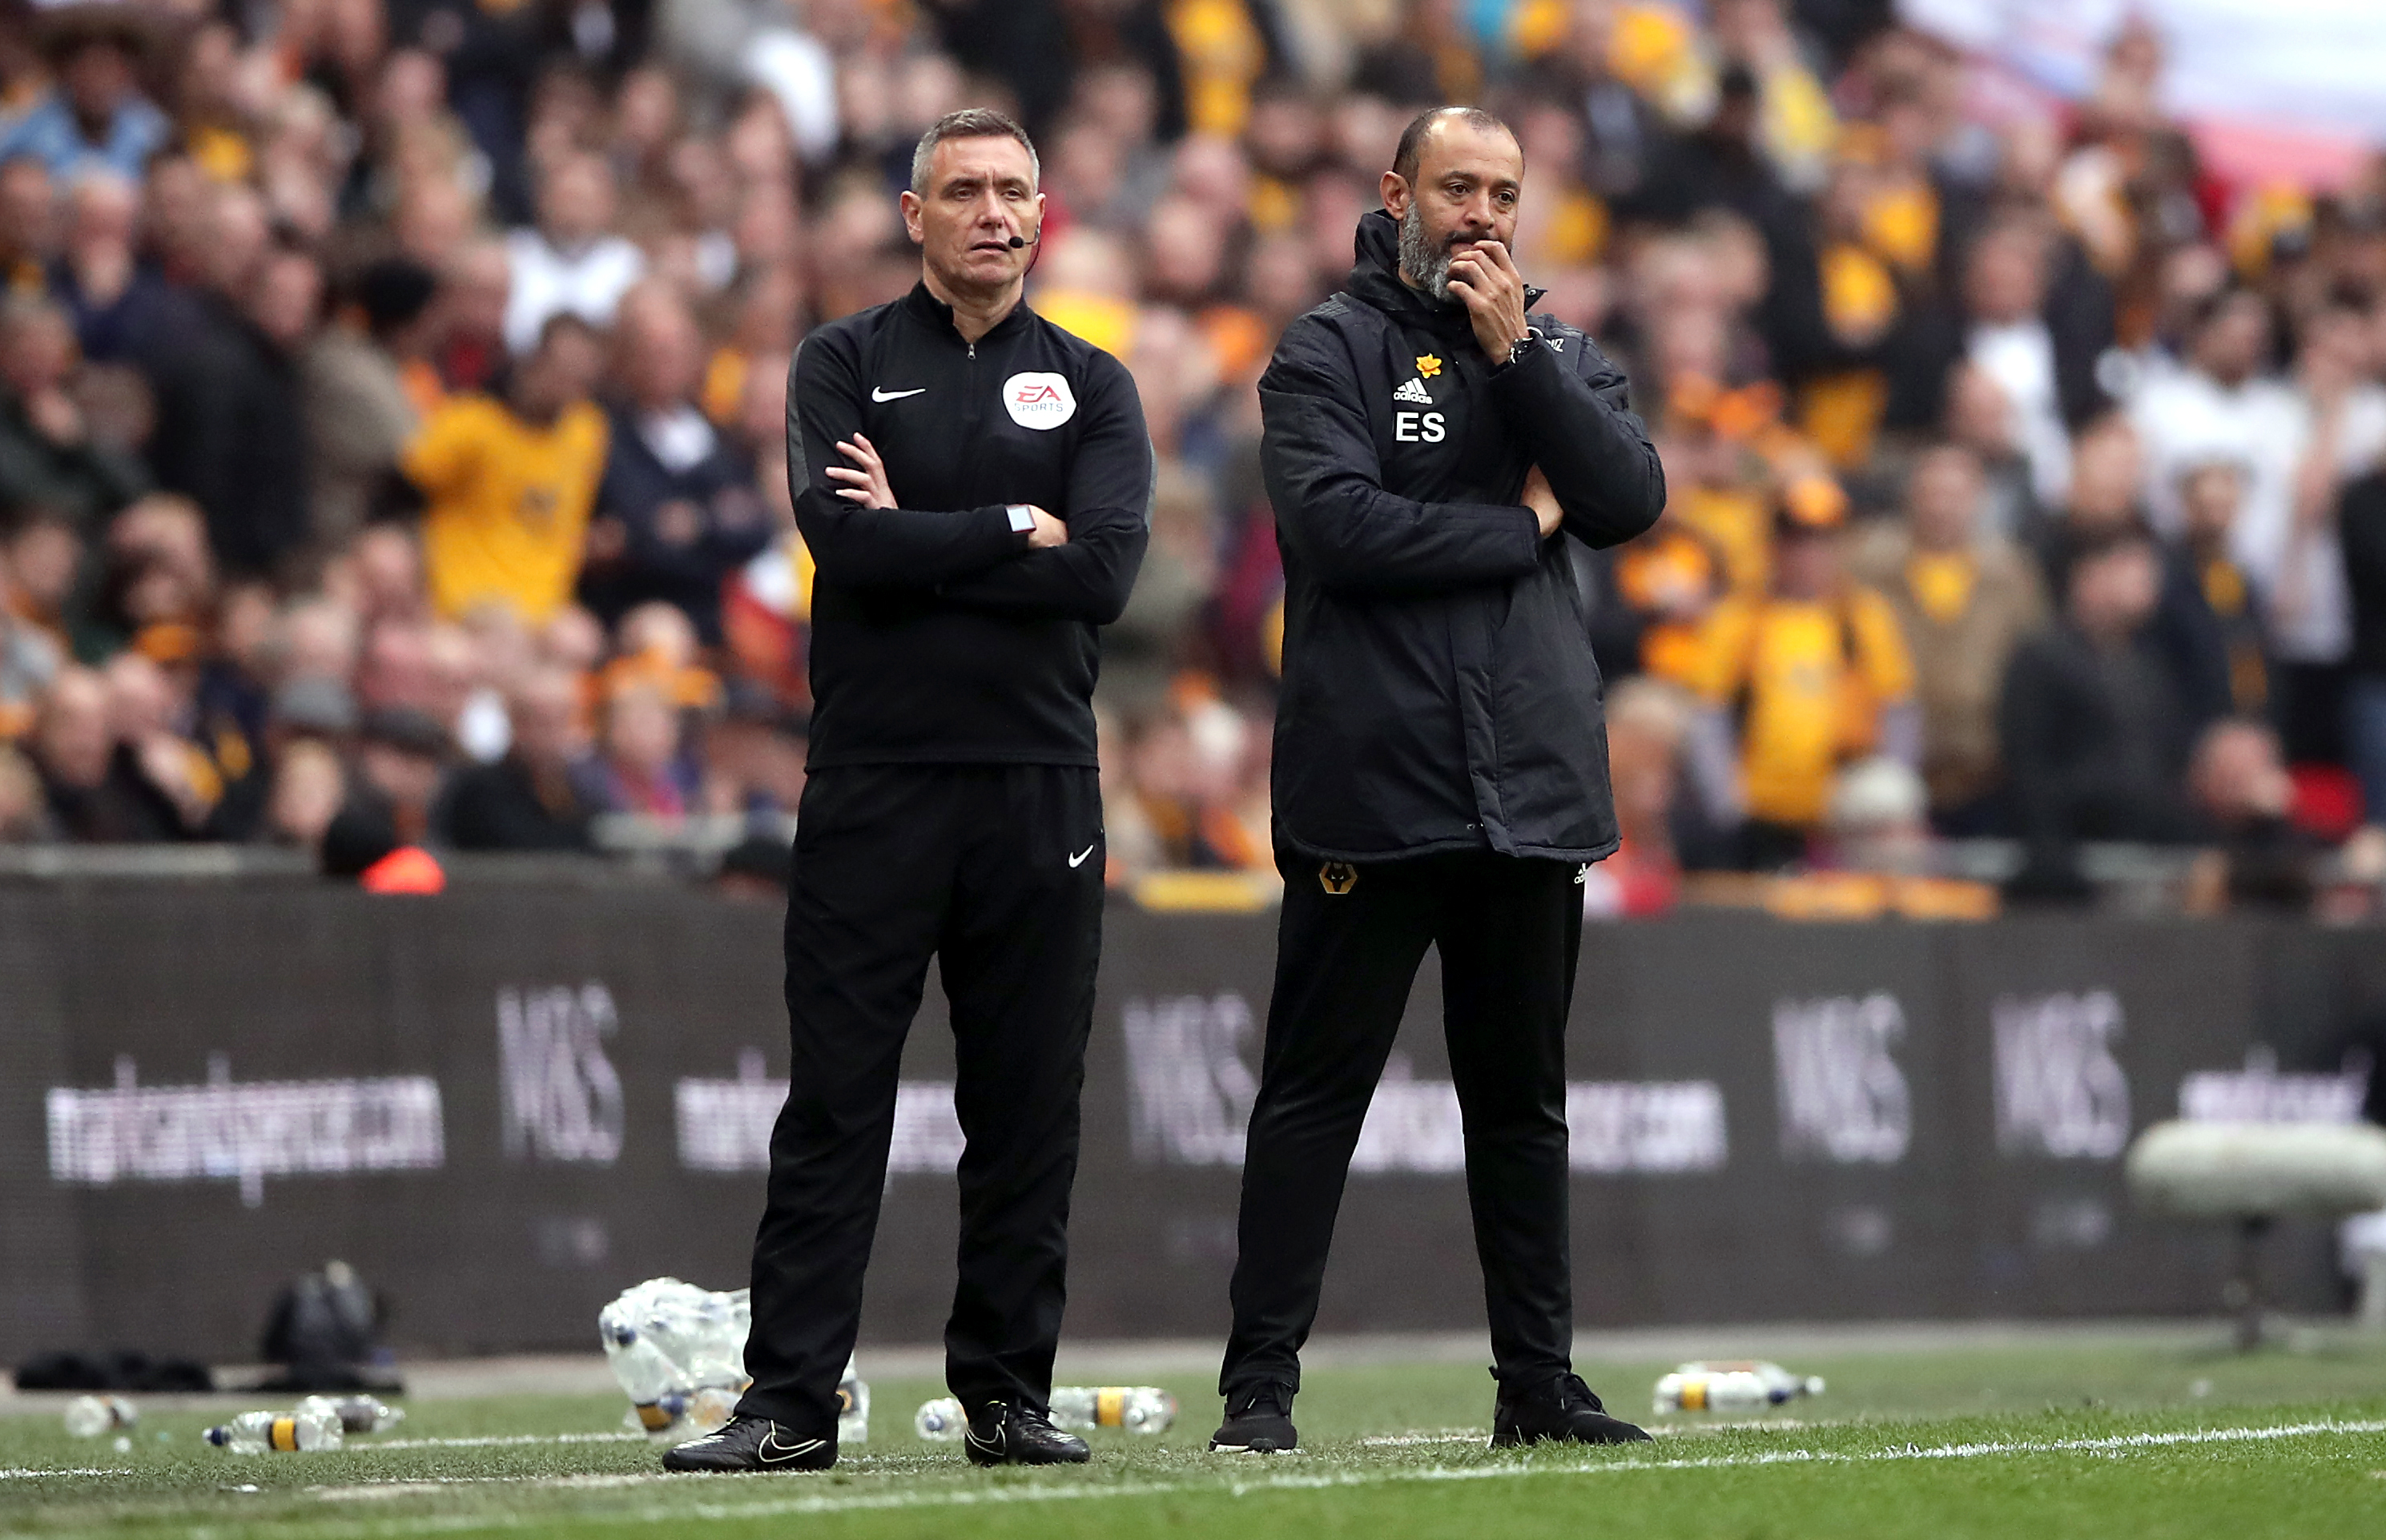 Wolves manager Nuno Espirito Santo was unable to stop the match slipping away from his team in extra-time